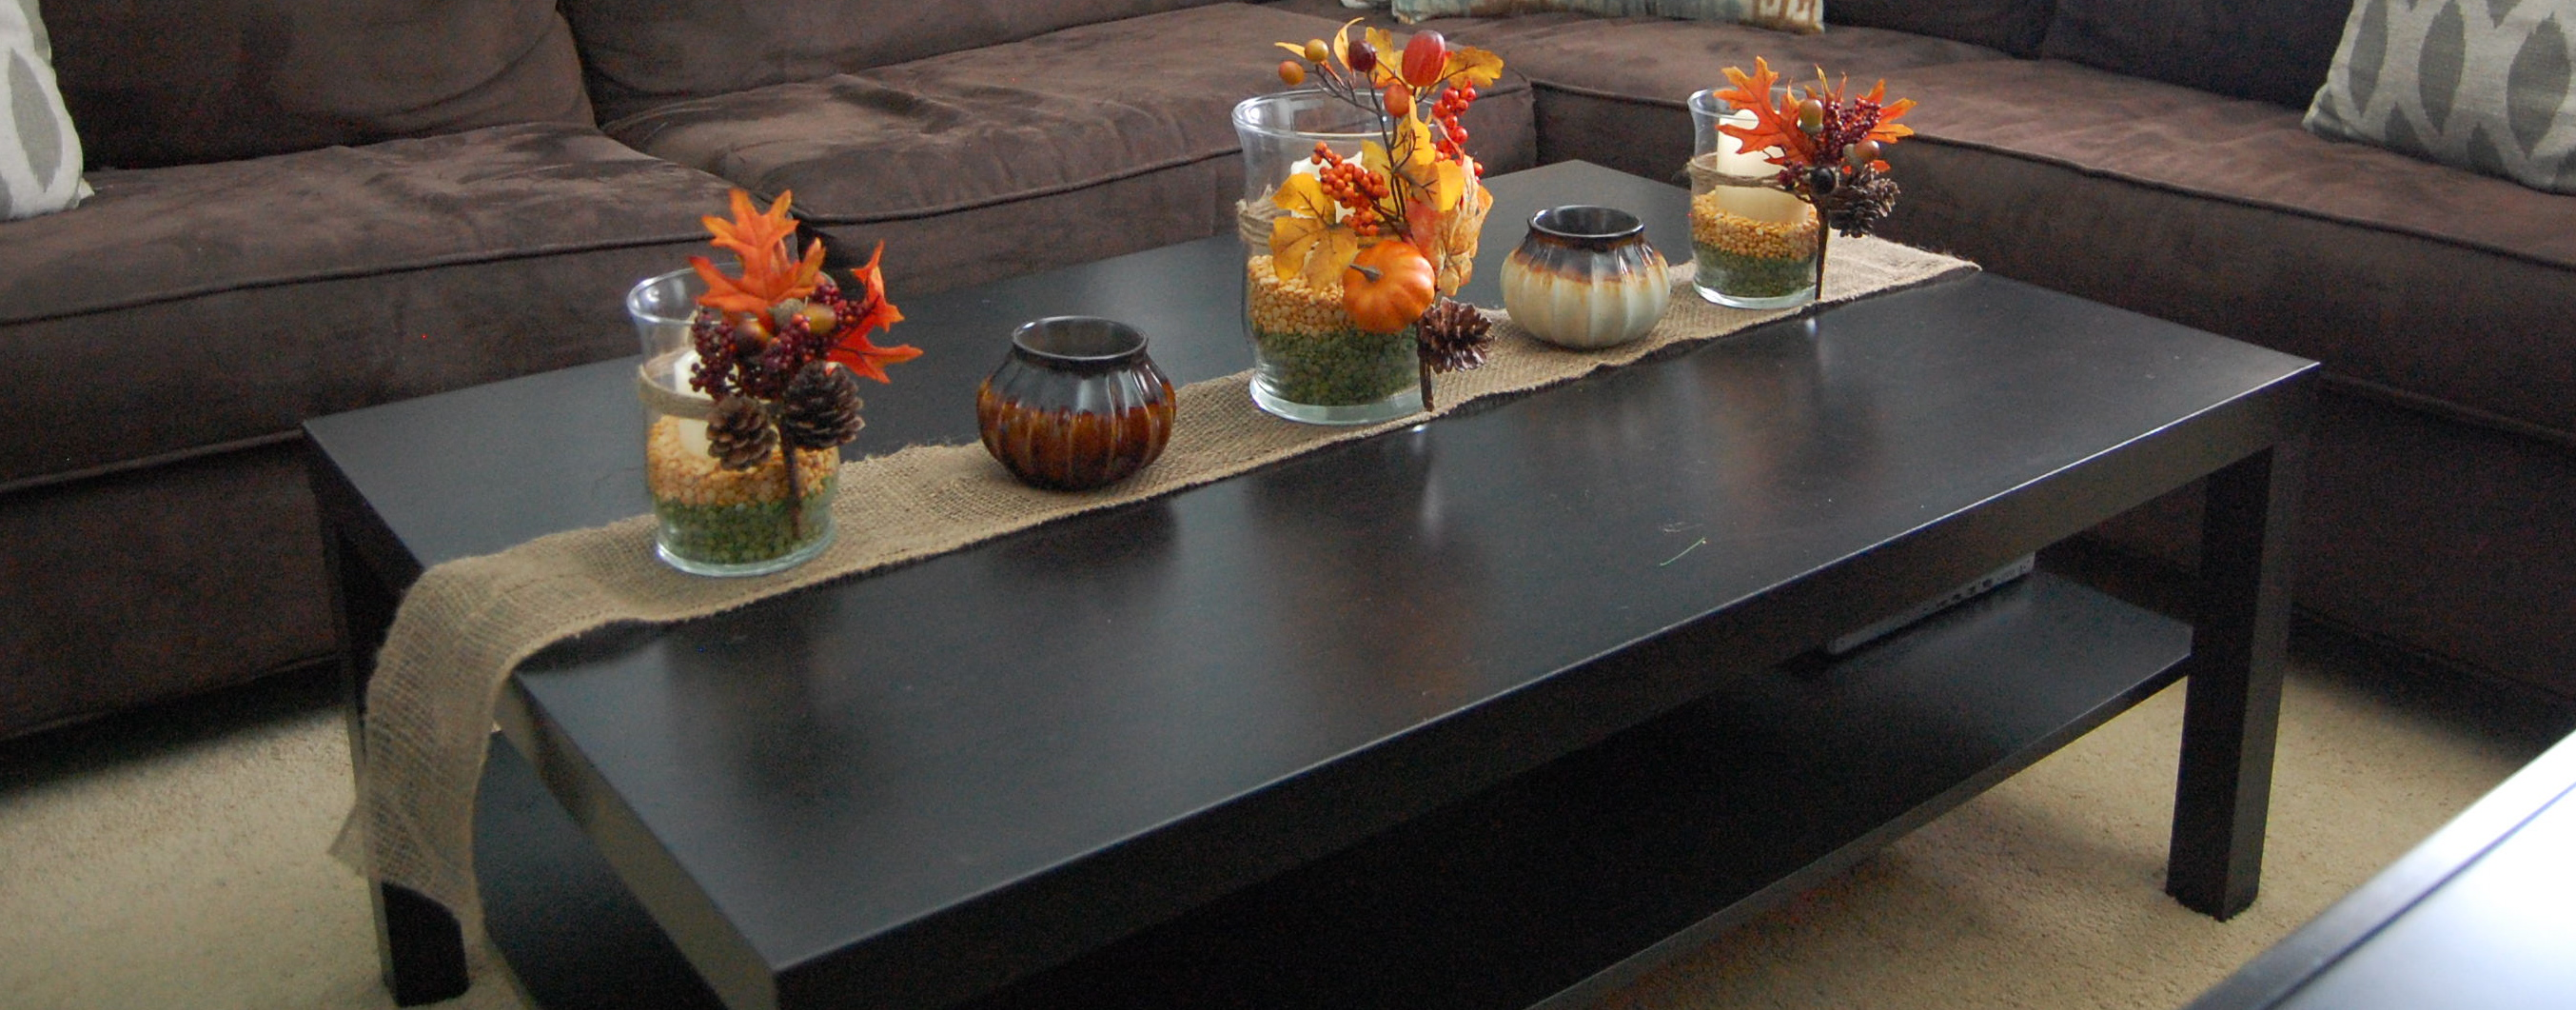 Fall table decor for Fall table